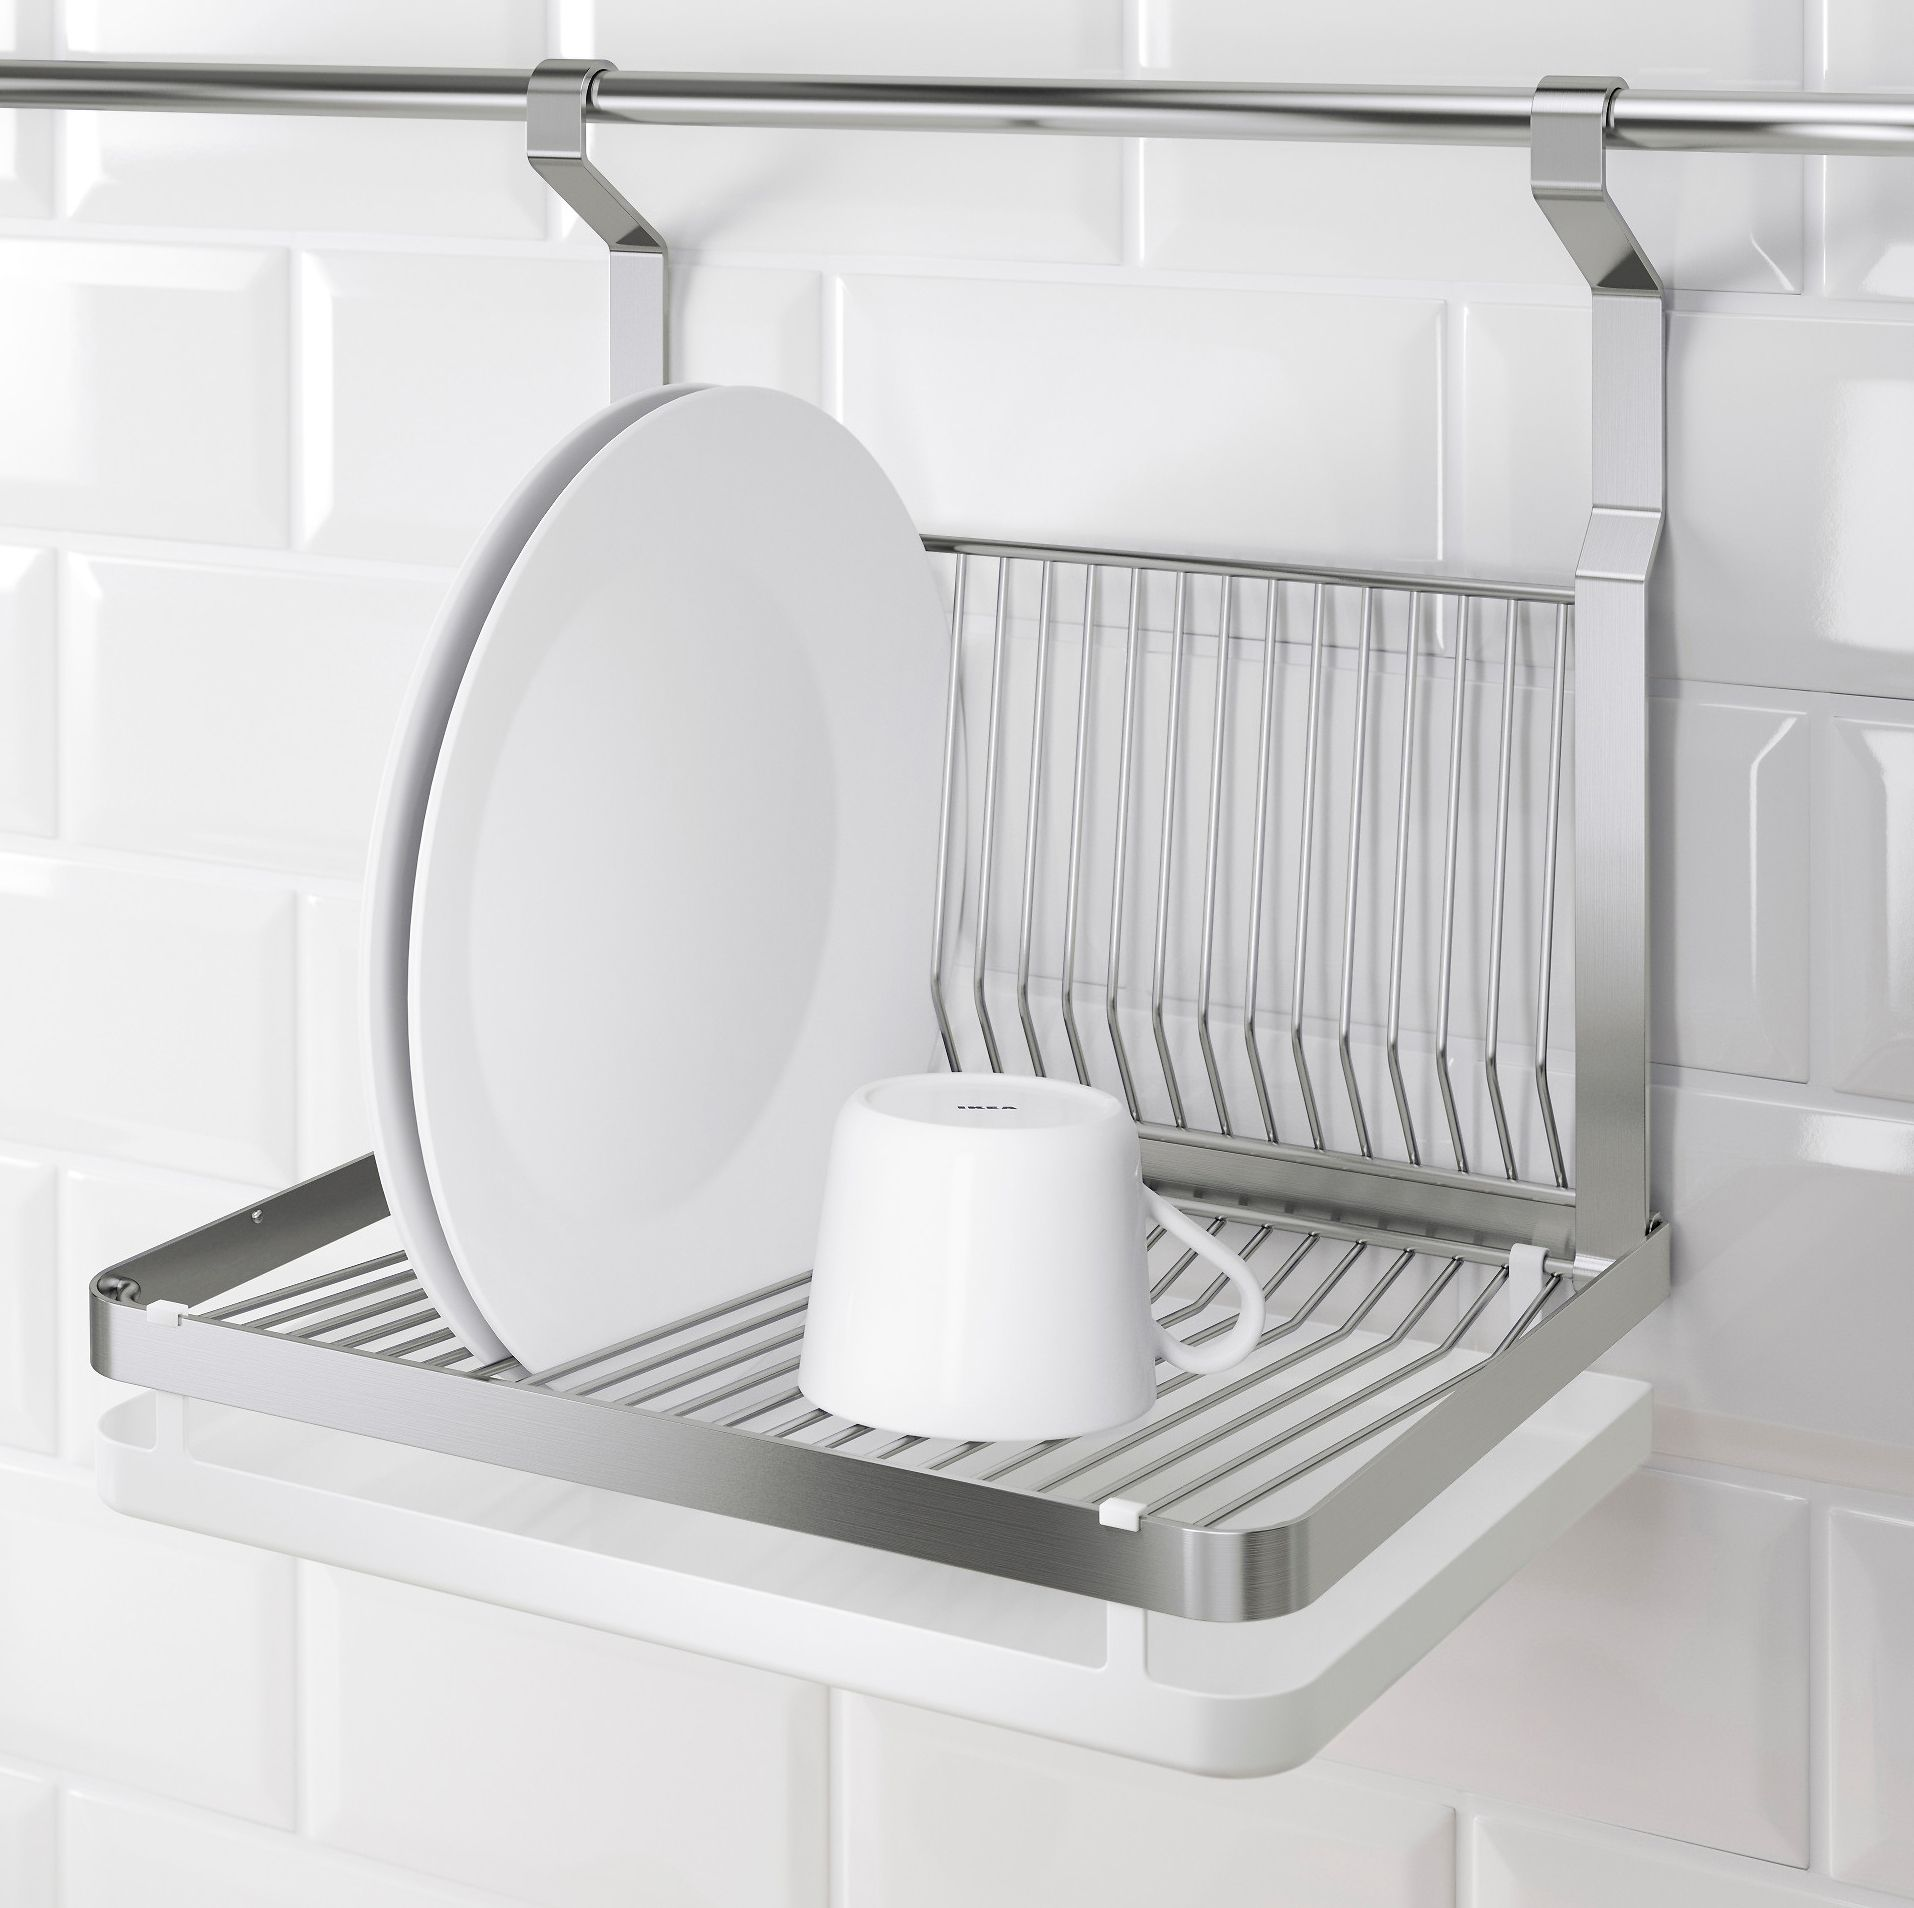 10 Design Y Dish Racks For Your Compact Kitchen Dish Drainers Dish Rack Drying Dish Racks